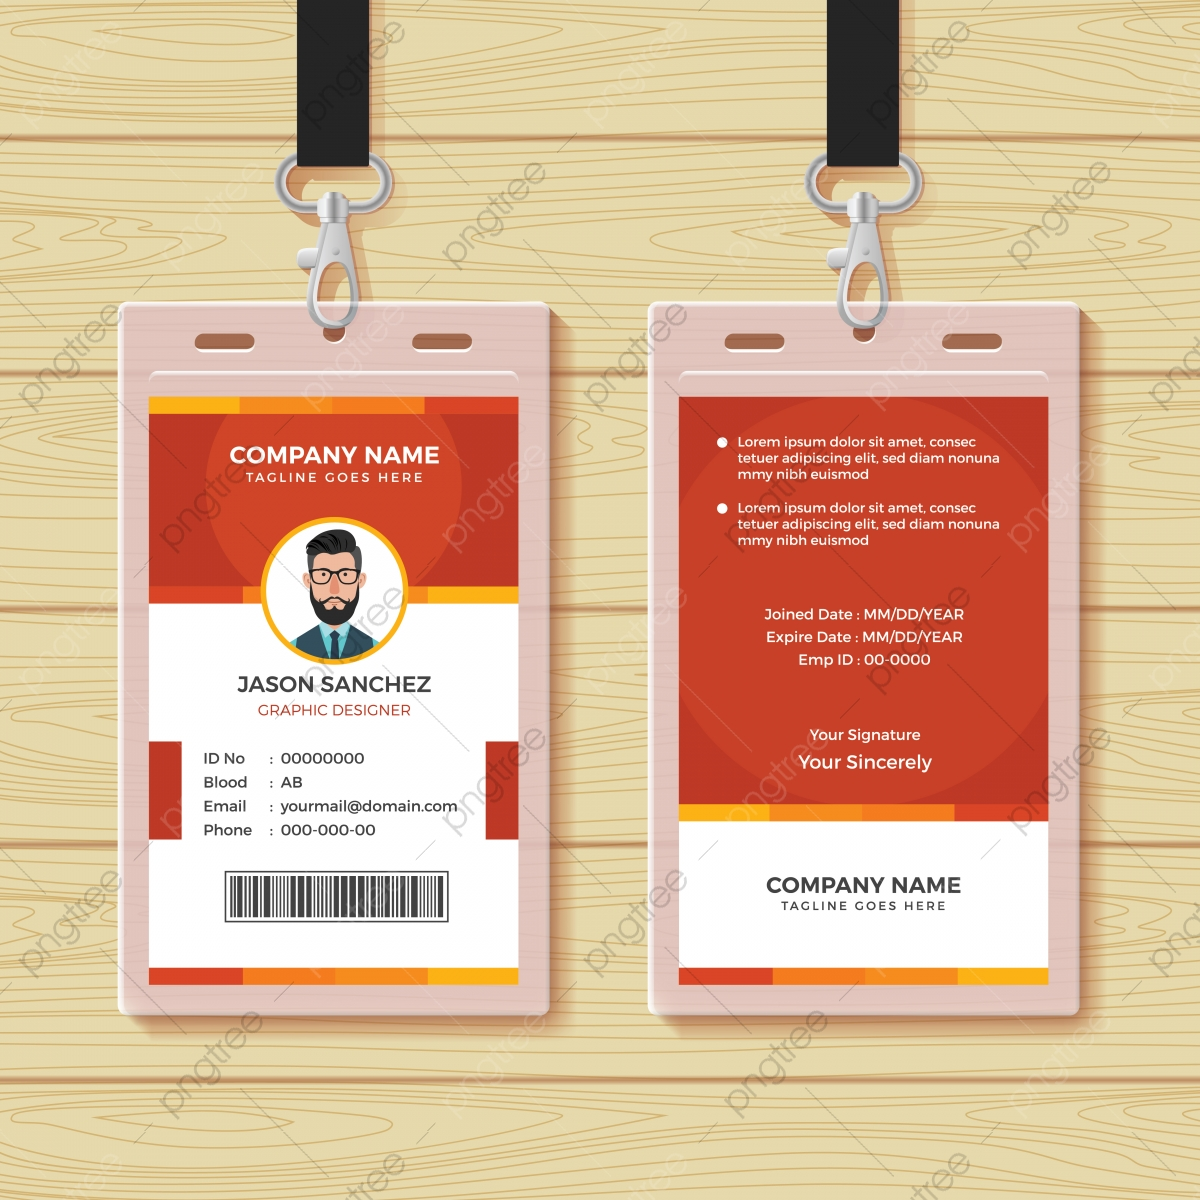 Id Card Png Vector Psd And Clipart With Transparent Background For Free Download Pngtree